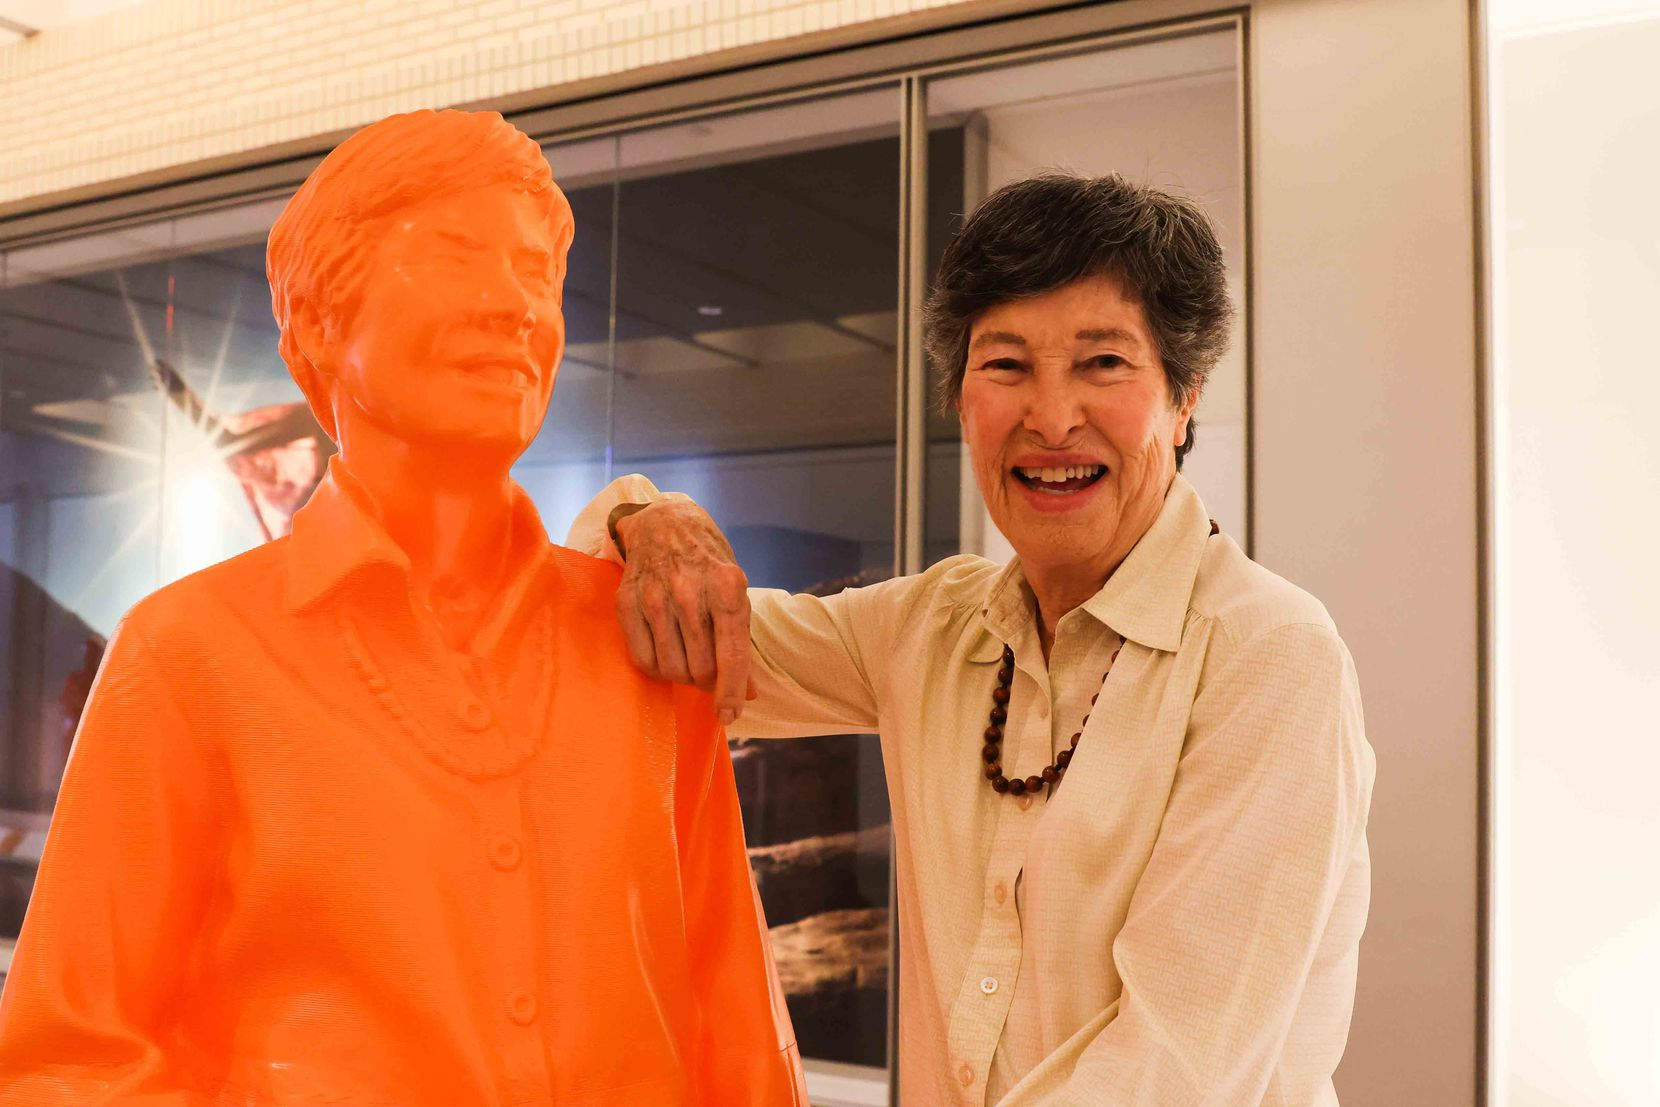 Lyda Hill, founder of LH Capital Inc., poses next to her own sculpture in the exhibit at NorthPark.